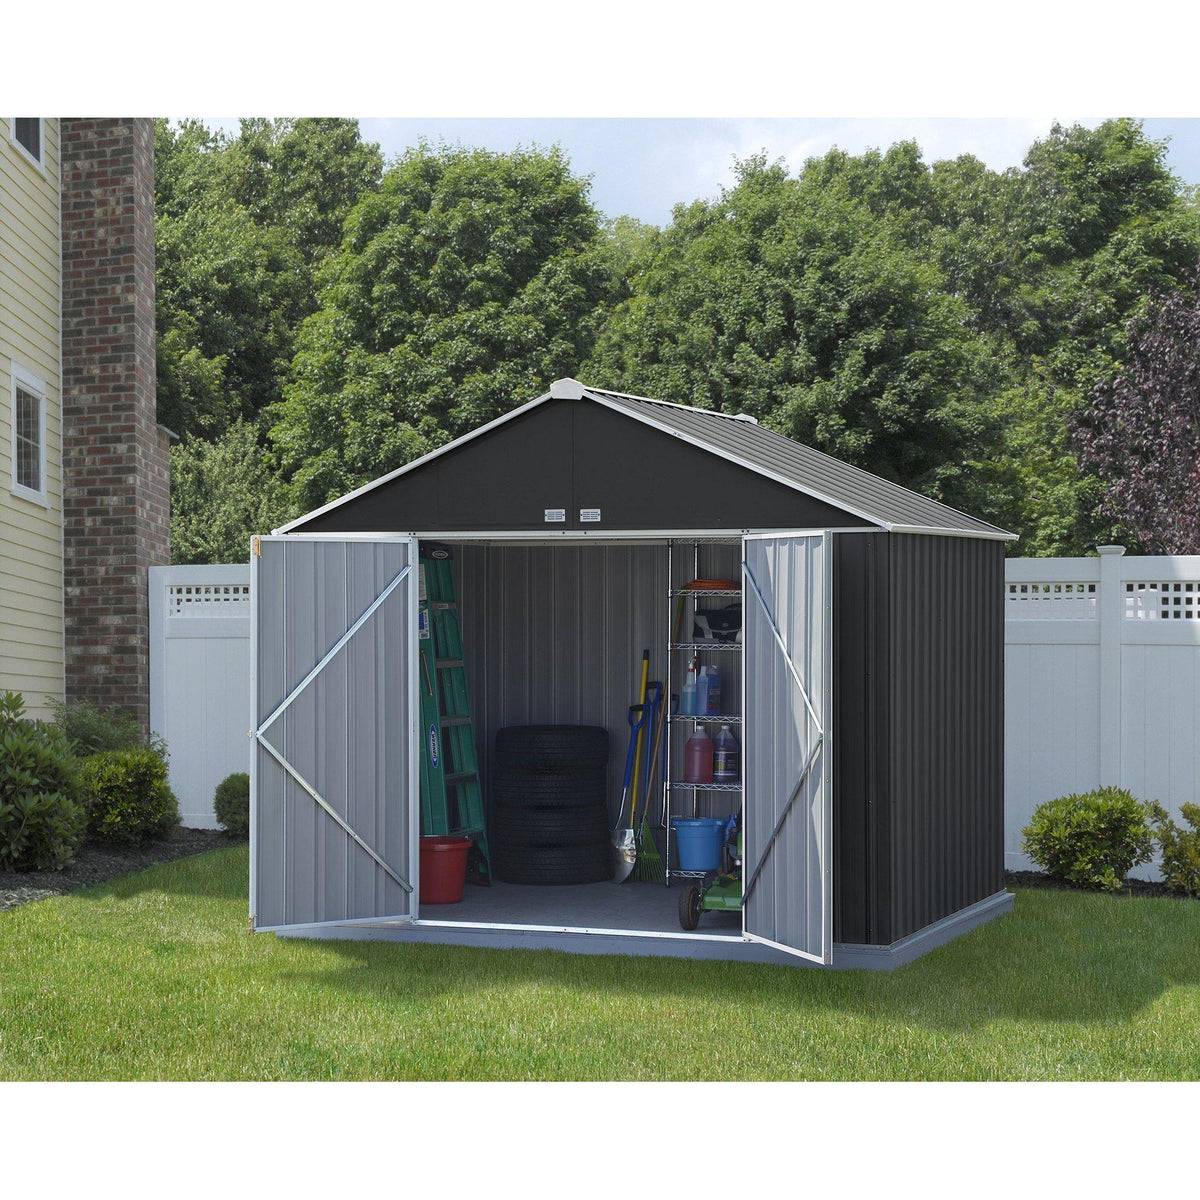 Arrow EZEE Shed Extra High Gable Steel Storage Shed, Charcoal/Cream Trim, 10 x 8 ft.